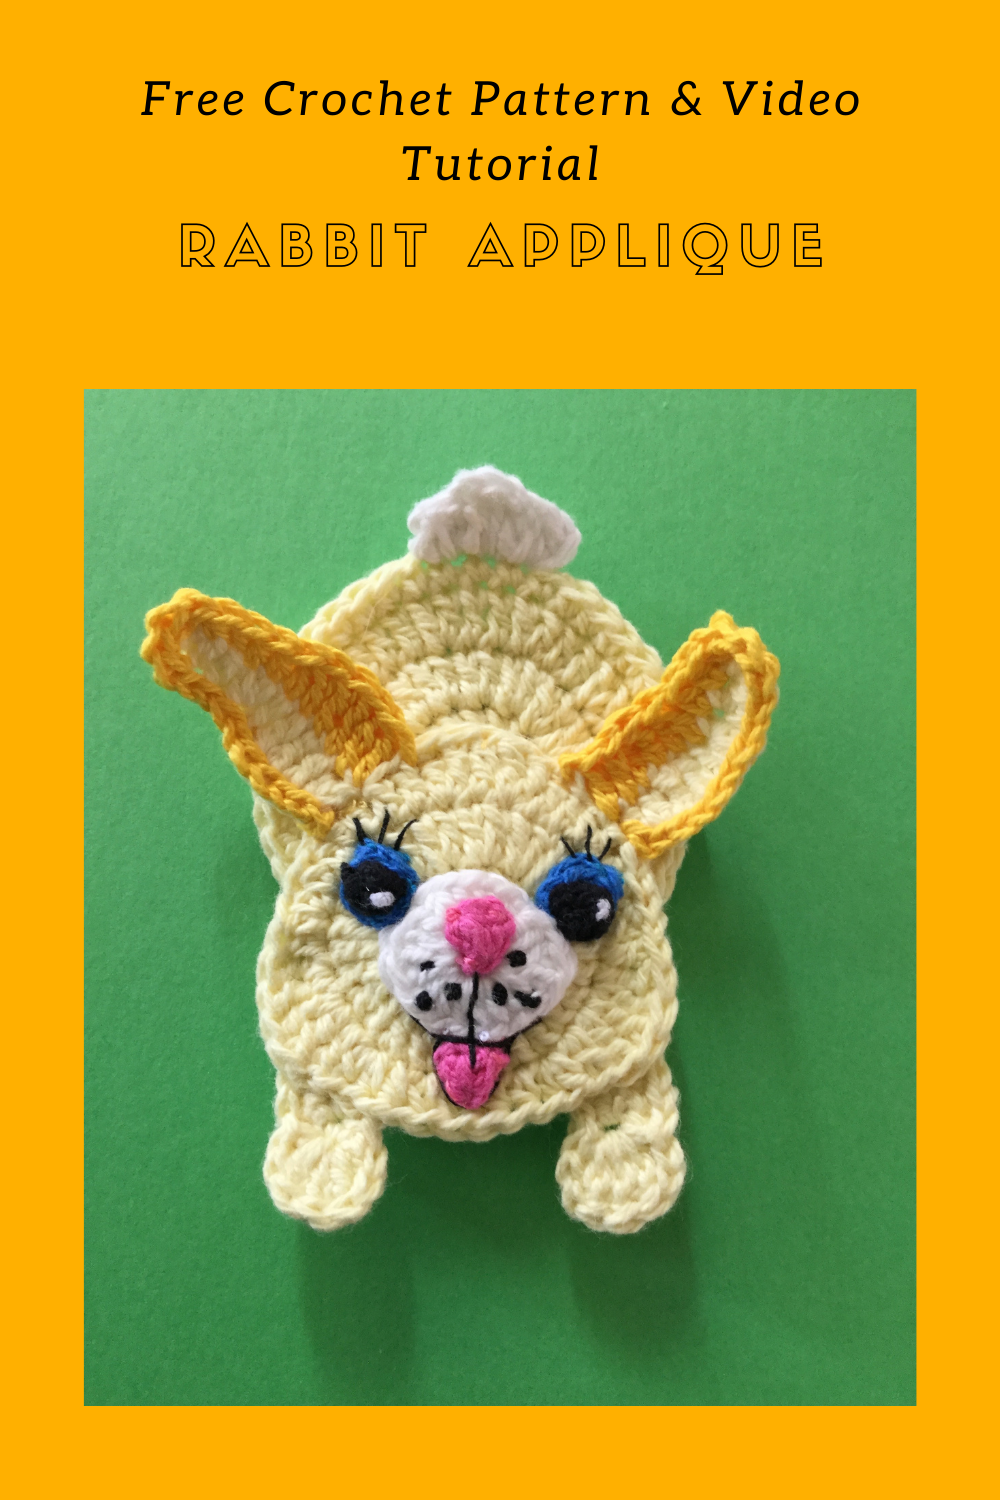 Find the free crochet pattern and video tutorial for this rabbit applique at Kerri's Crochet.